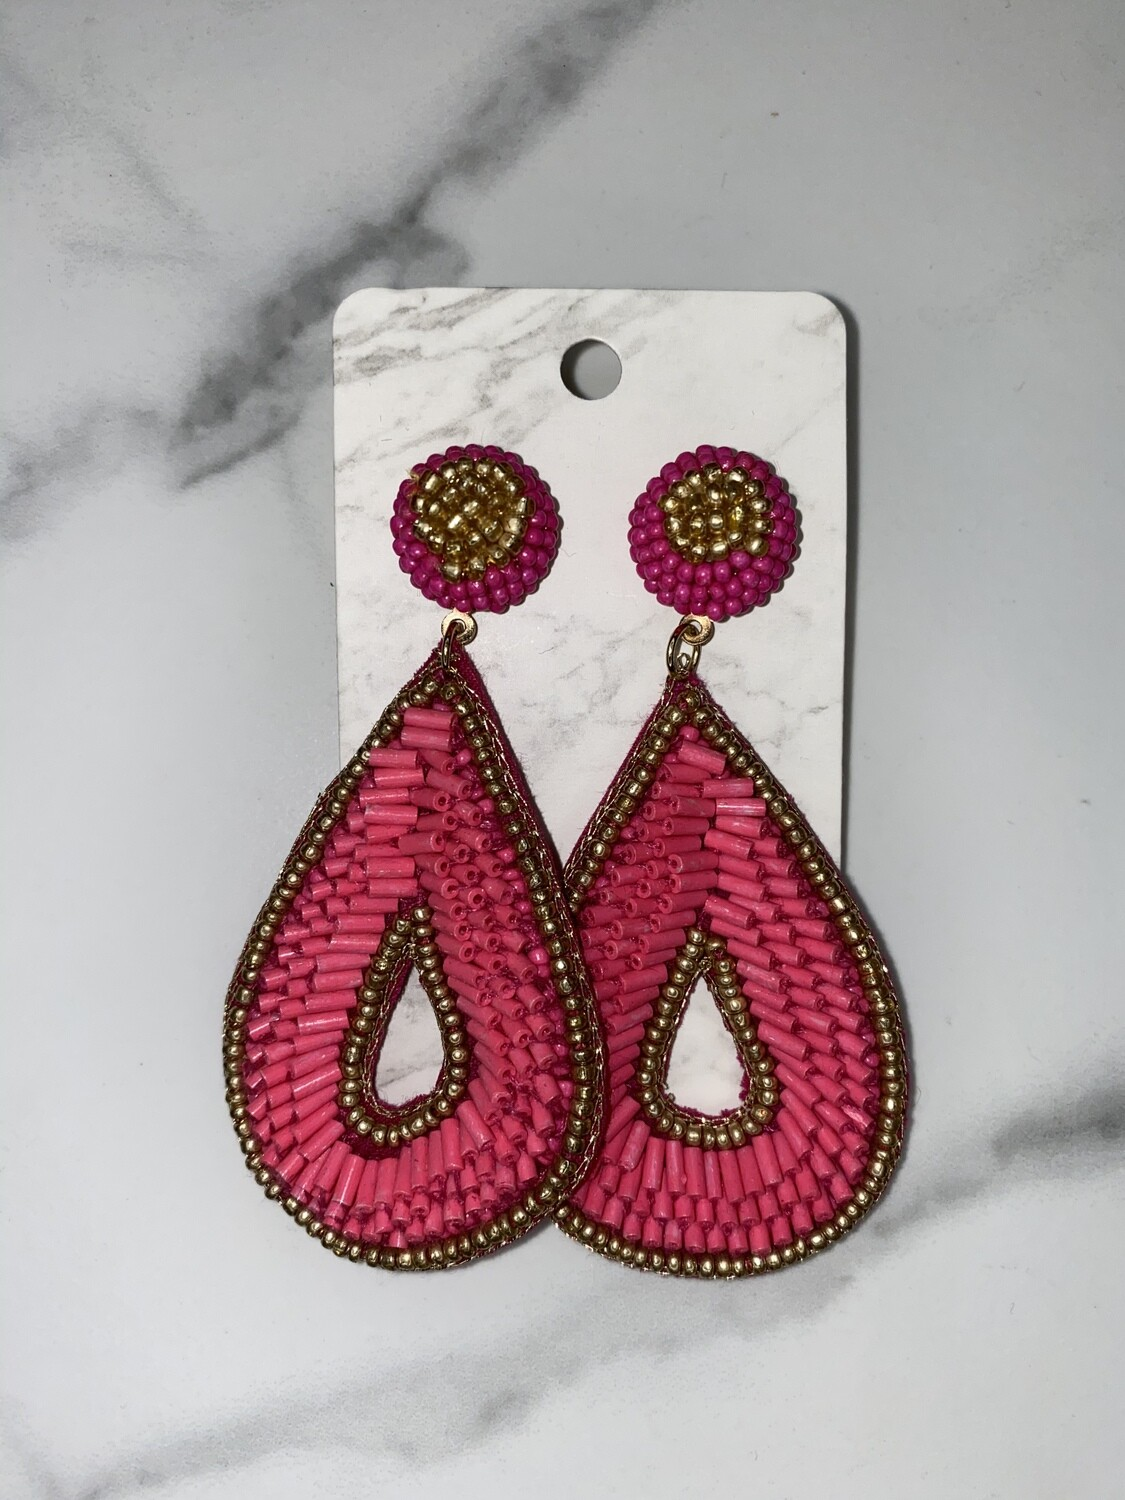 Seed Bead Teardrop With Gold Outline Earrings